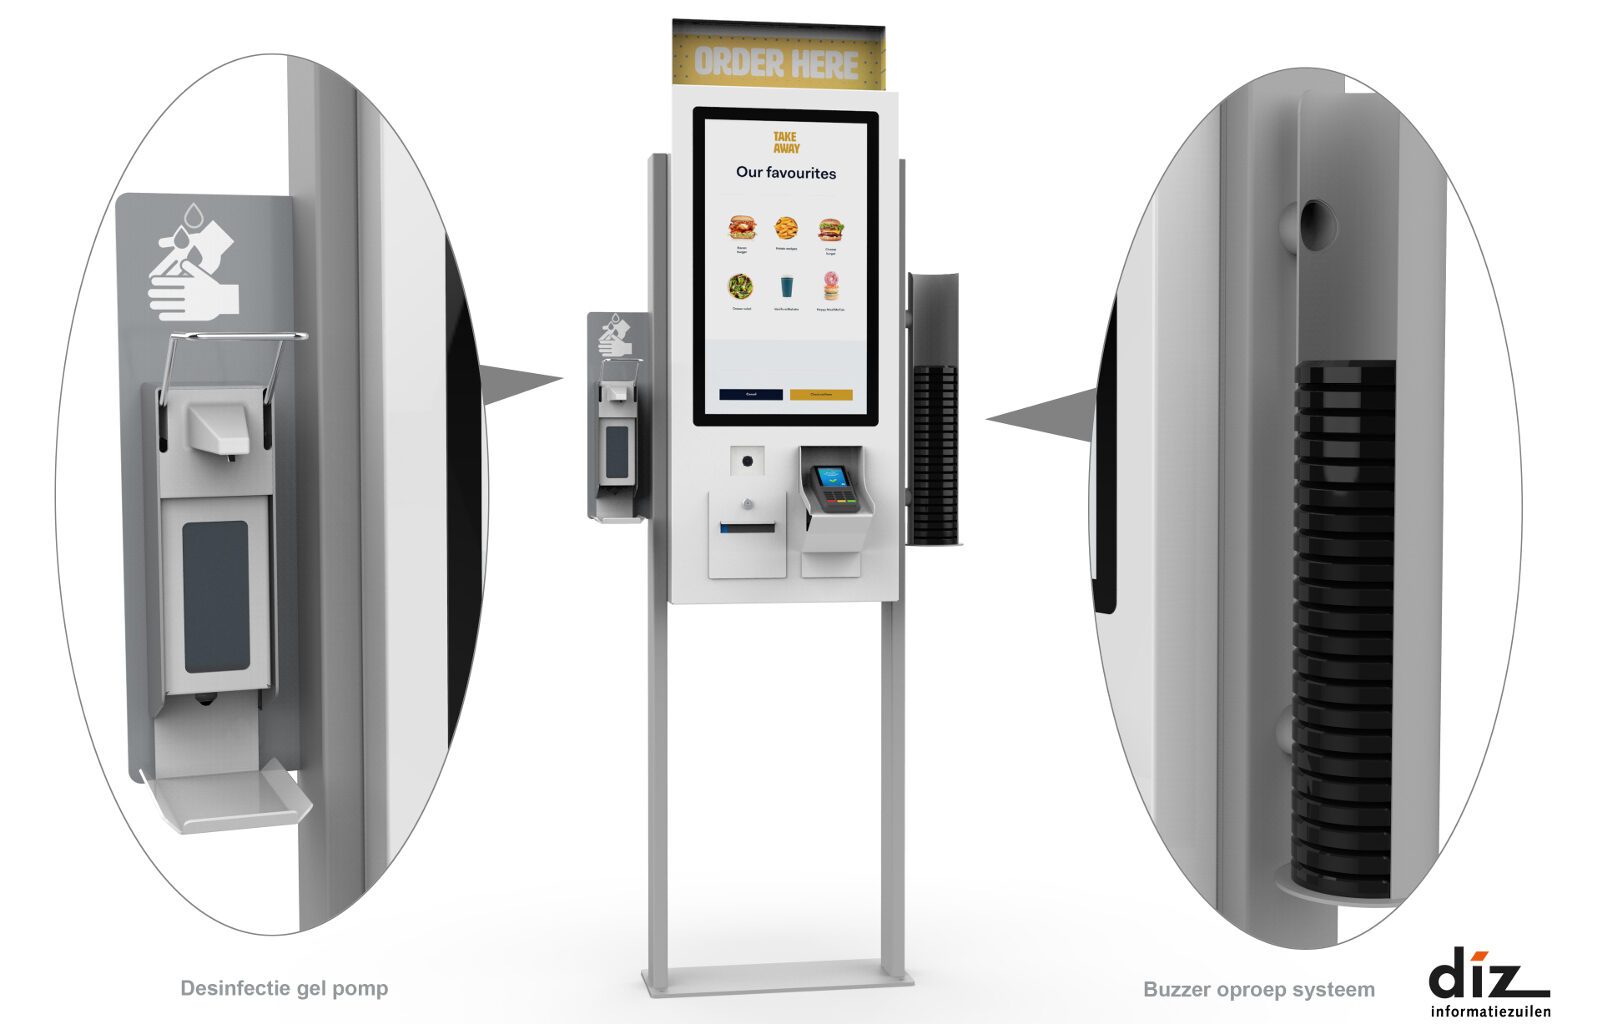 ordering kiosk with disinfection pump